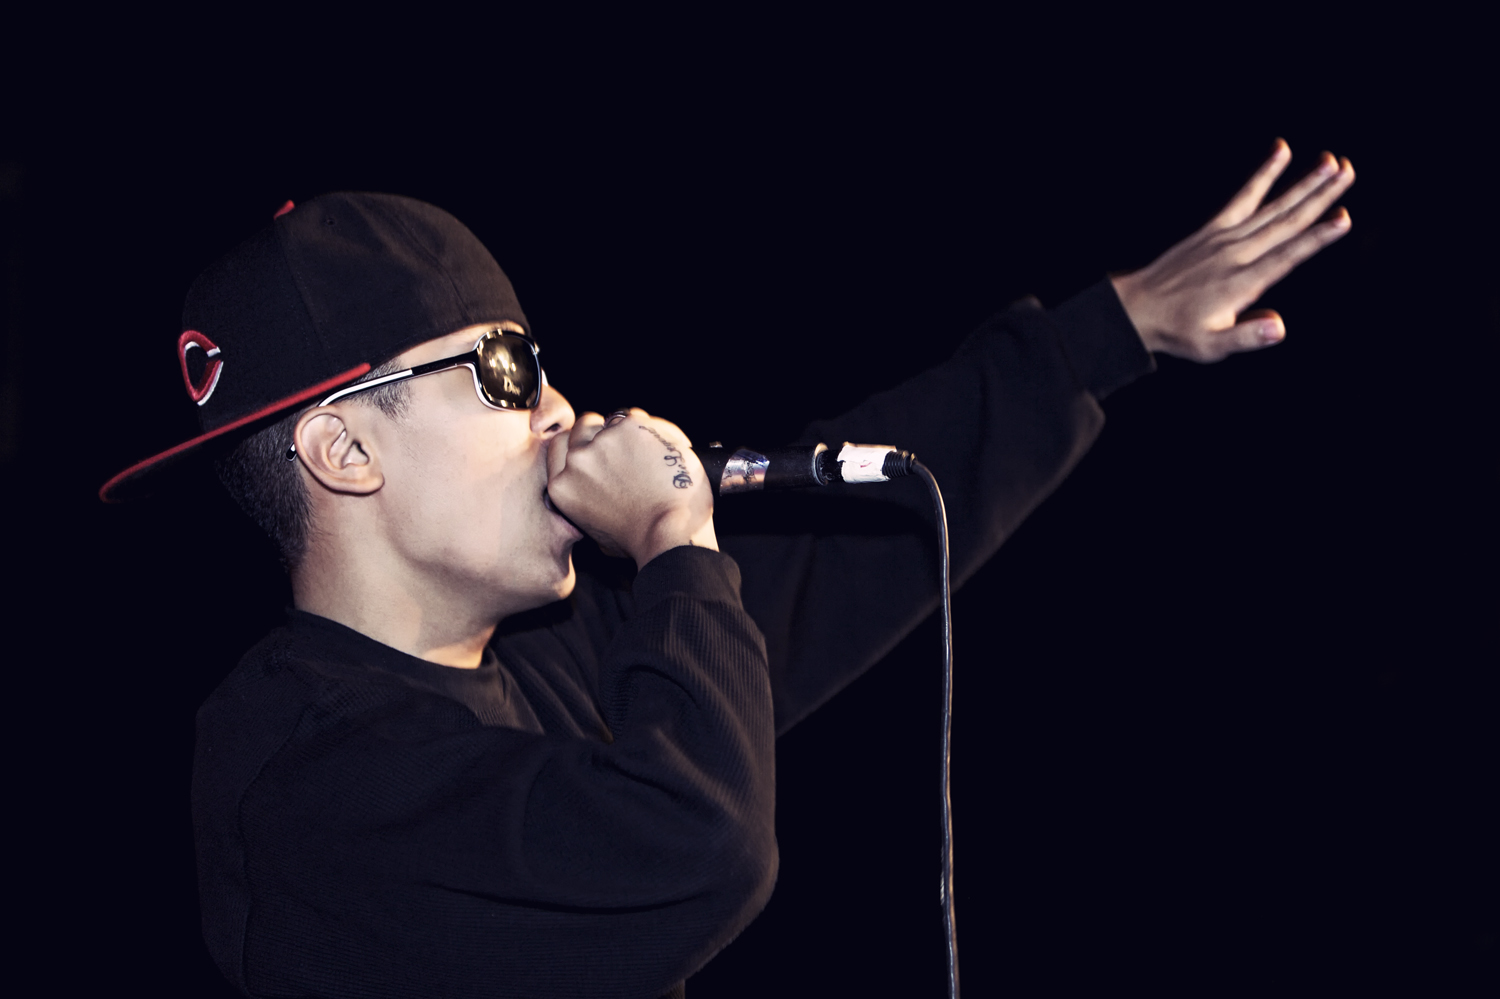 DOK2-Map the Soul